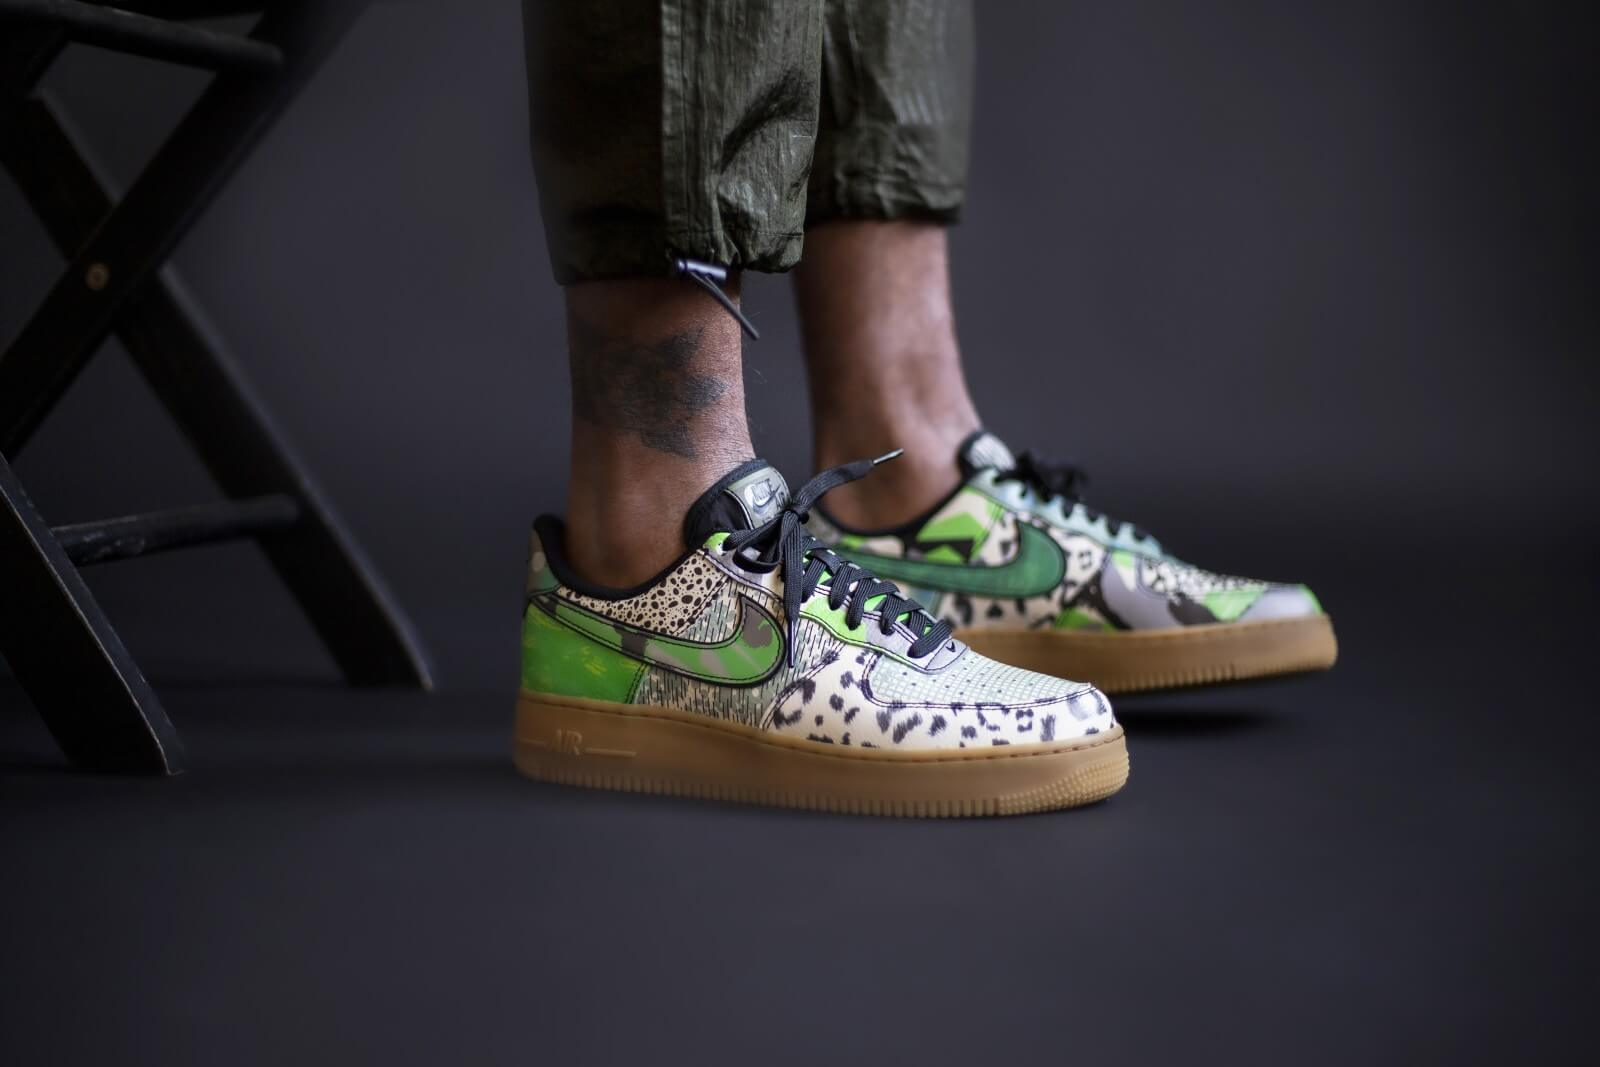 Nike Air Force 1 '07 Low 'City Of Dreams' Green